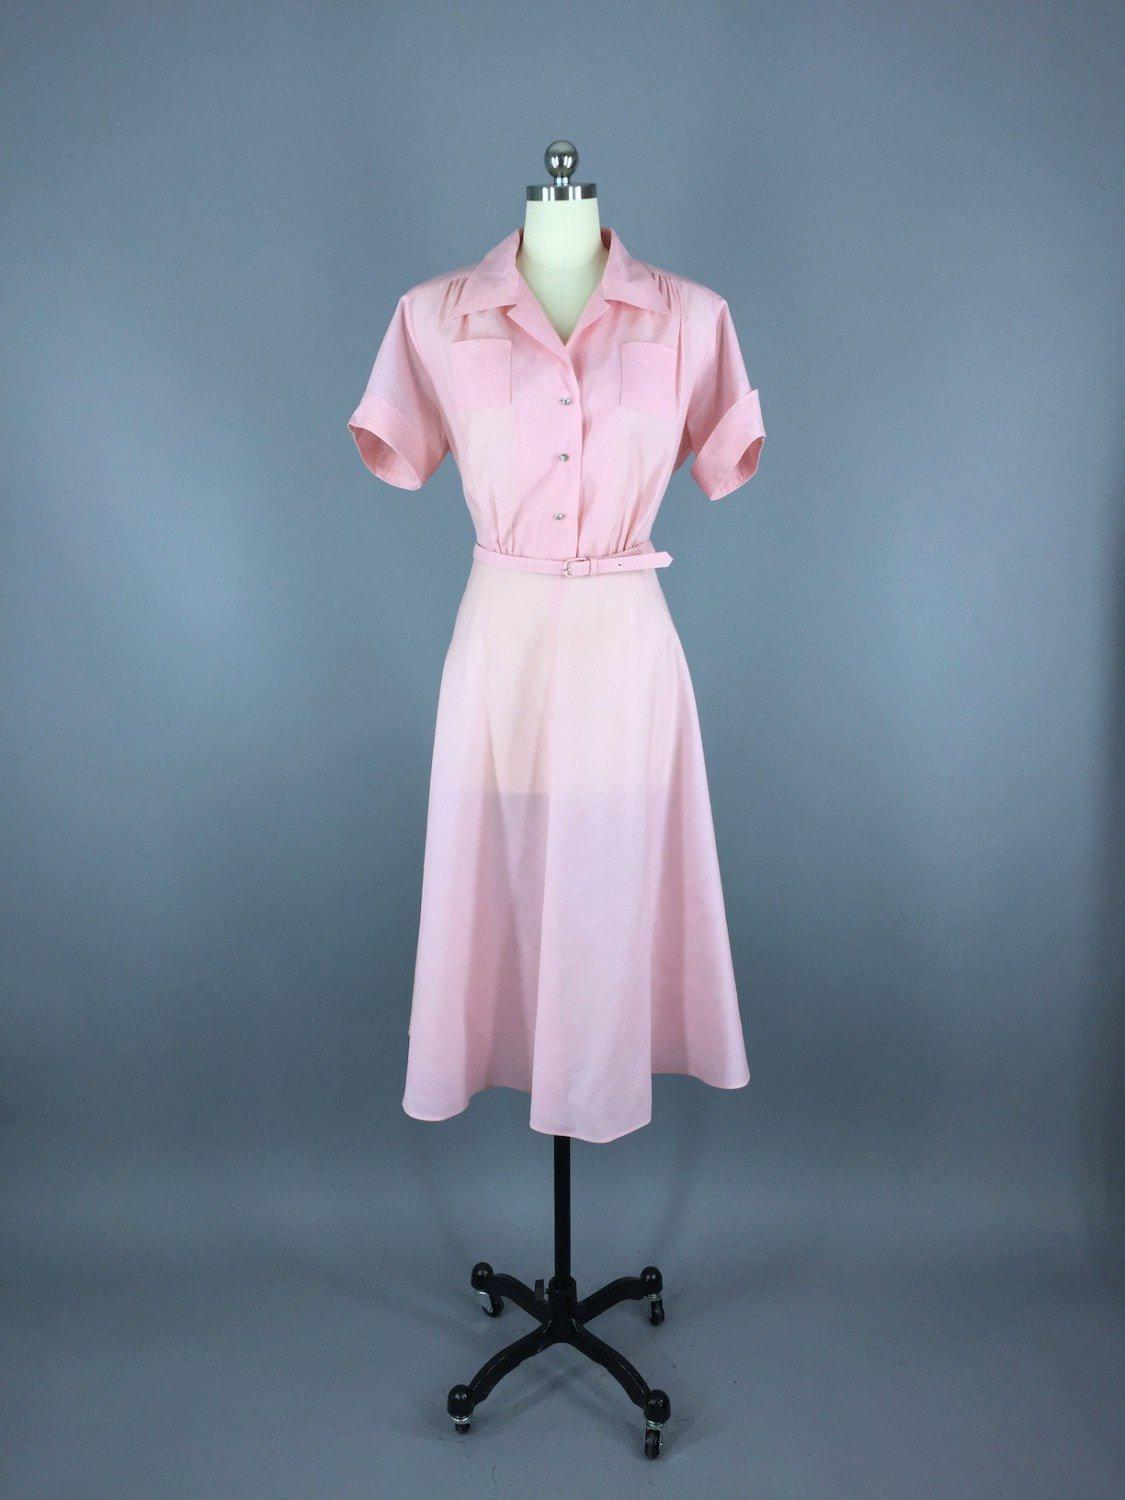 1950s Vintage Pink Day Dress Dress ThisBlueBird